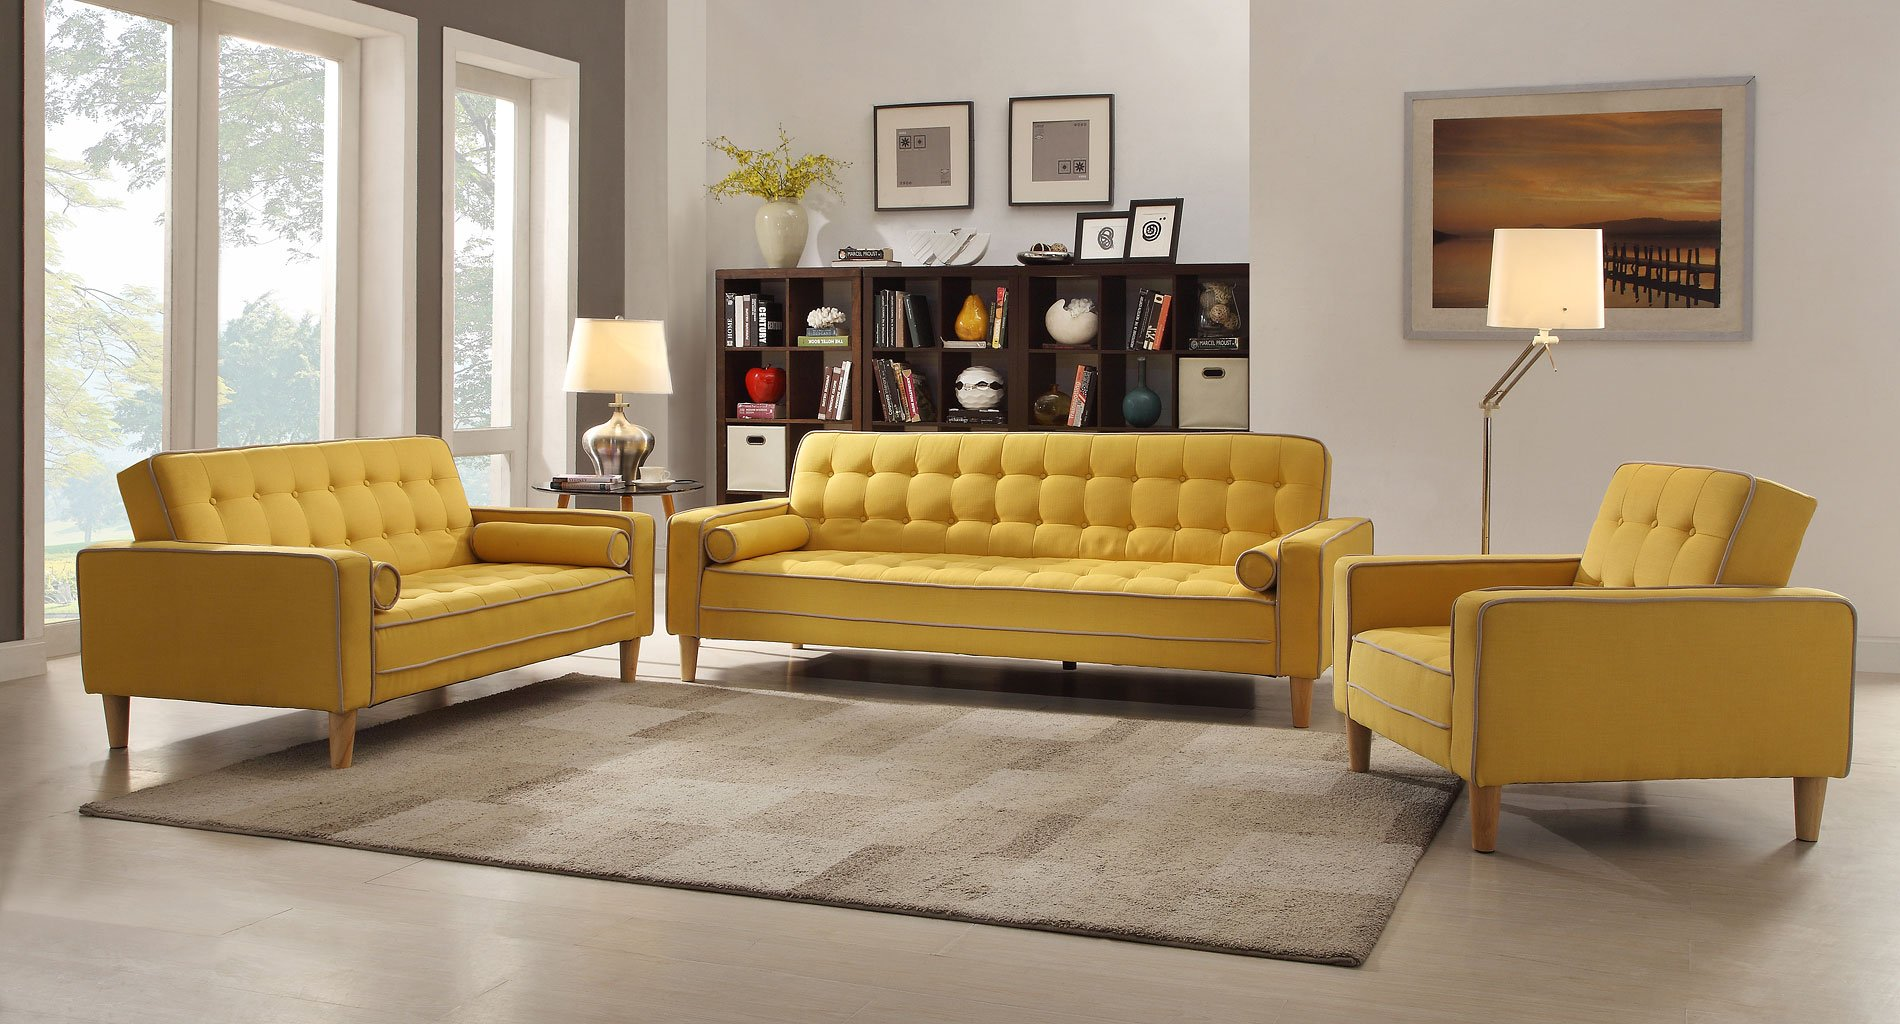 G834 Living Room Set Yellow